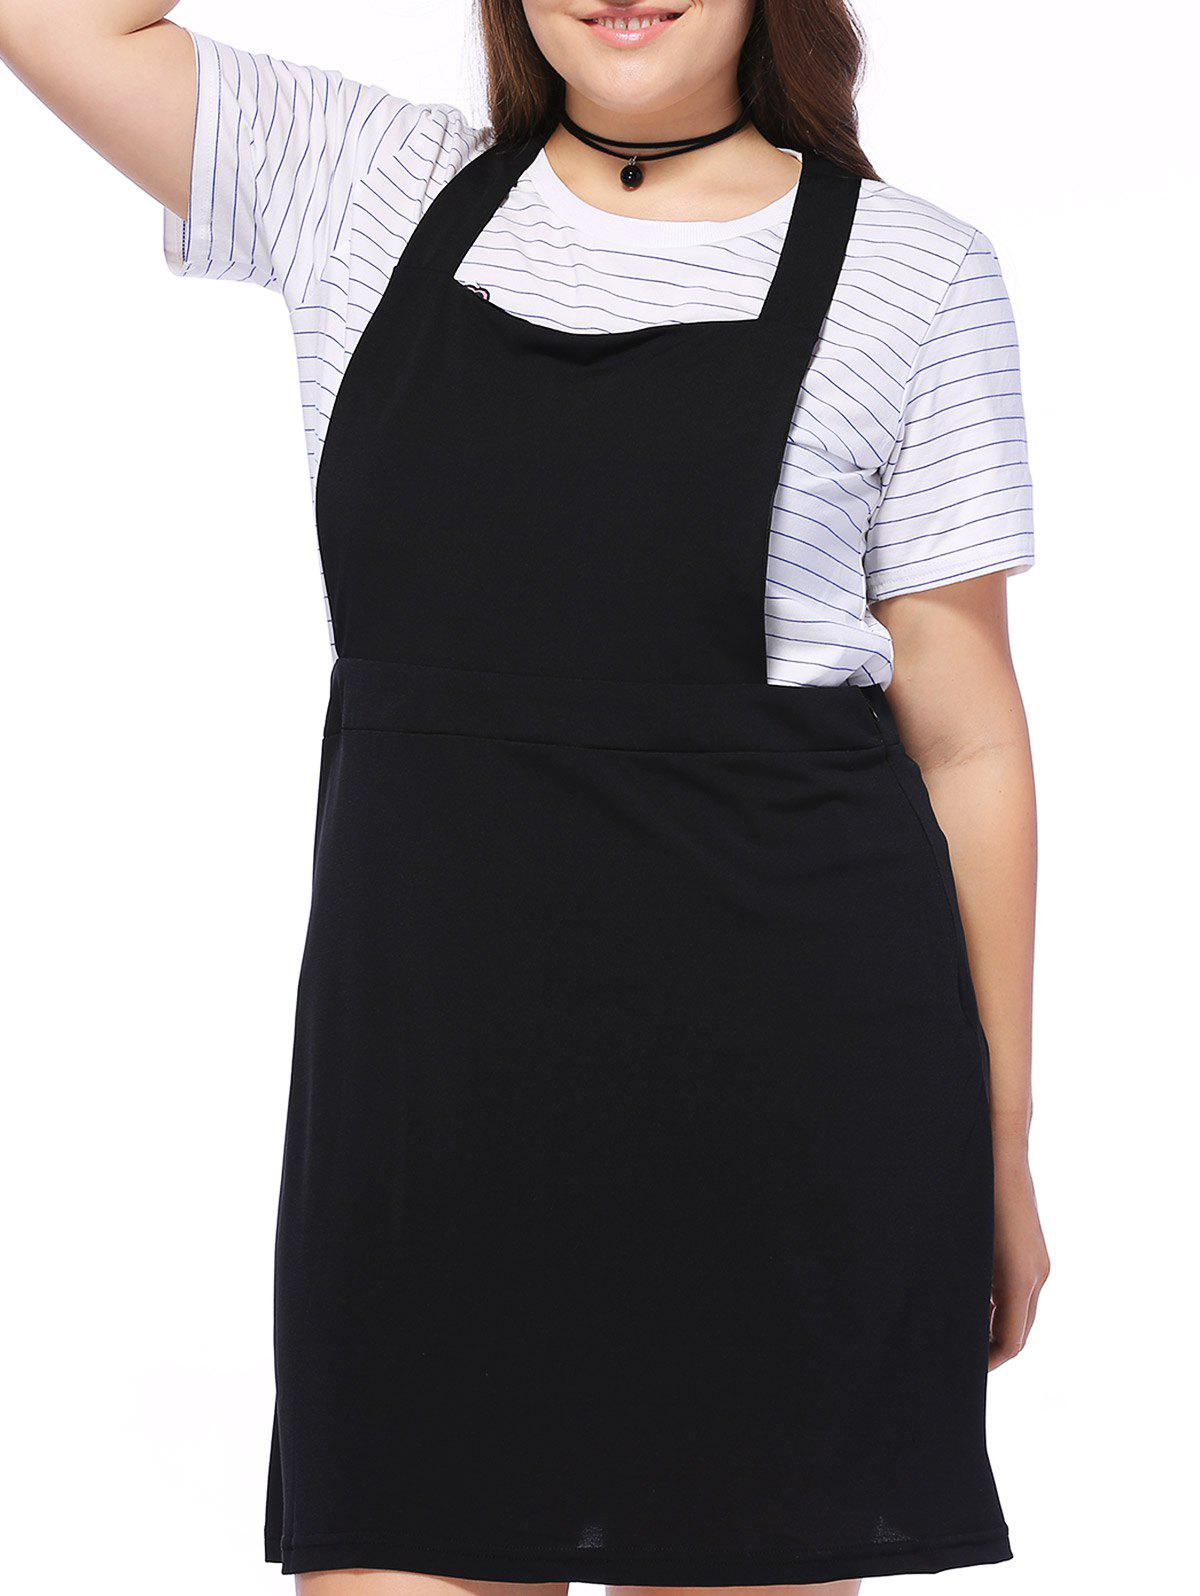 40% OFF] Plus Size Square Neck Mini Pinafore Dress | Rosegal